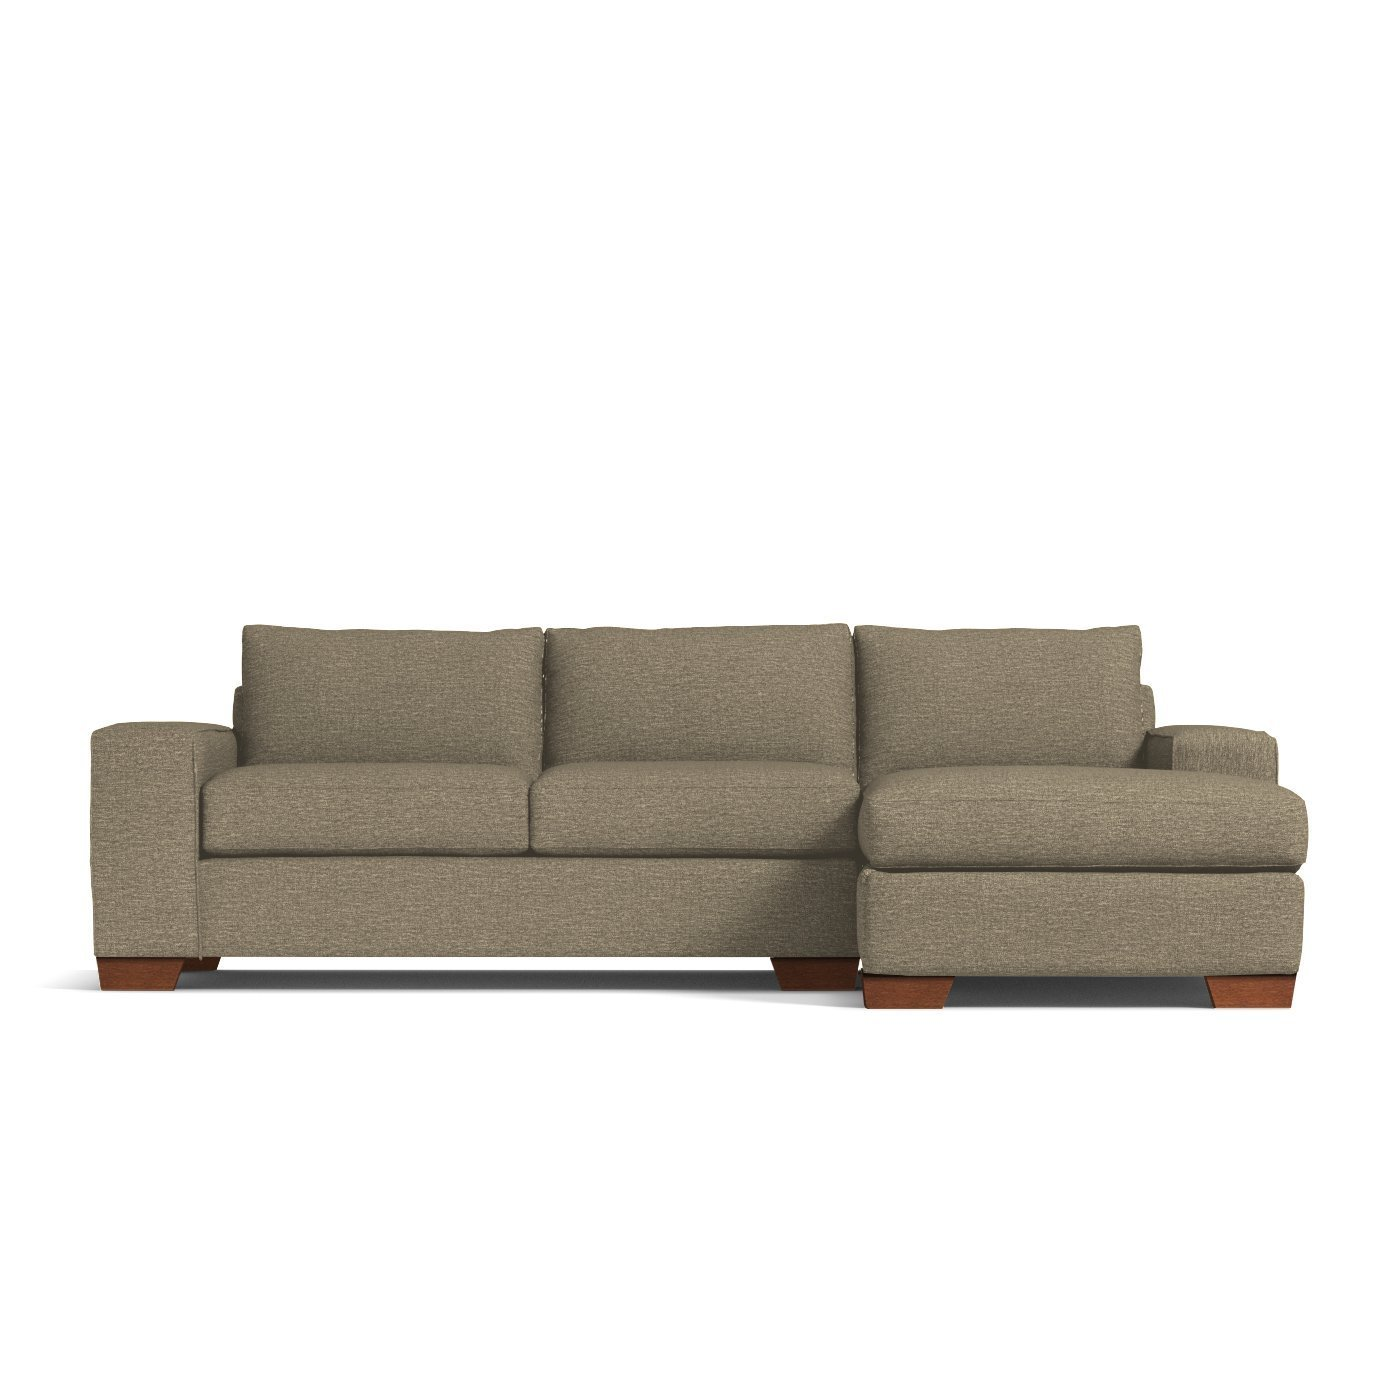 Outstanding Apt2B Melrose 2 Piece Sectional Sofa Raf Right Arm Facing Taupe Machost Co Dining Chair Design Ideas Machostcouk